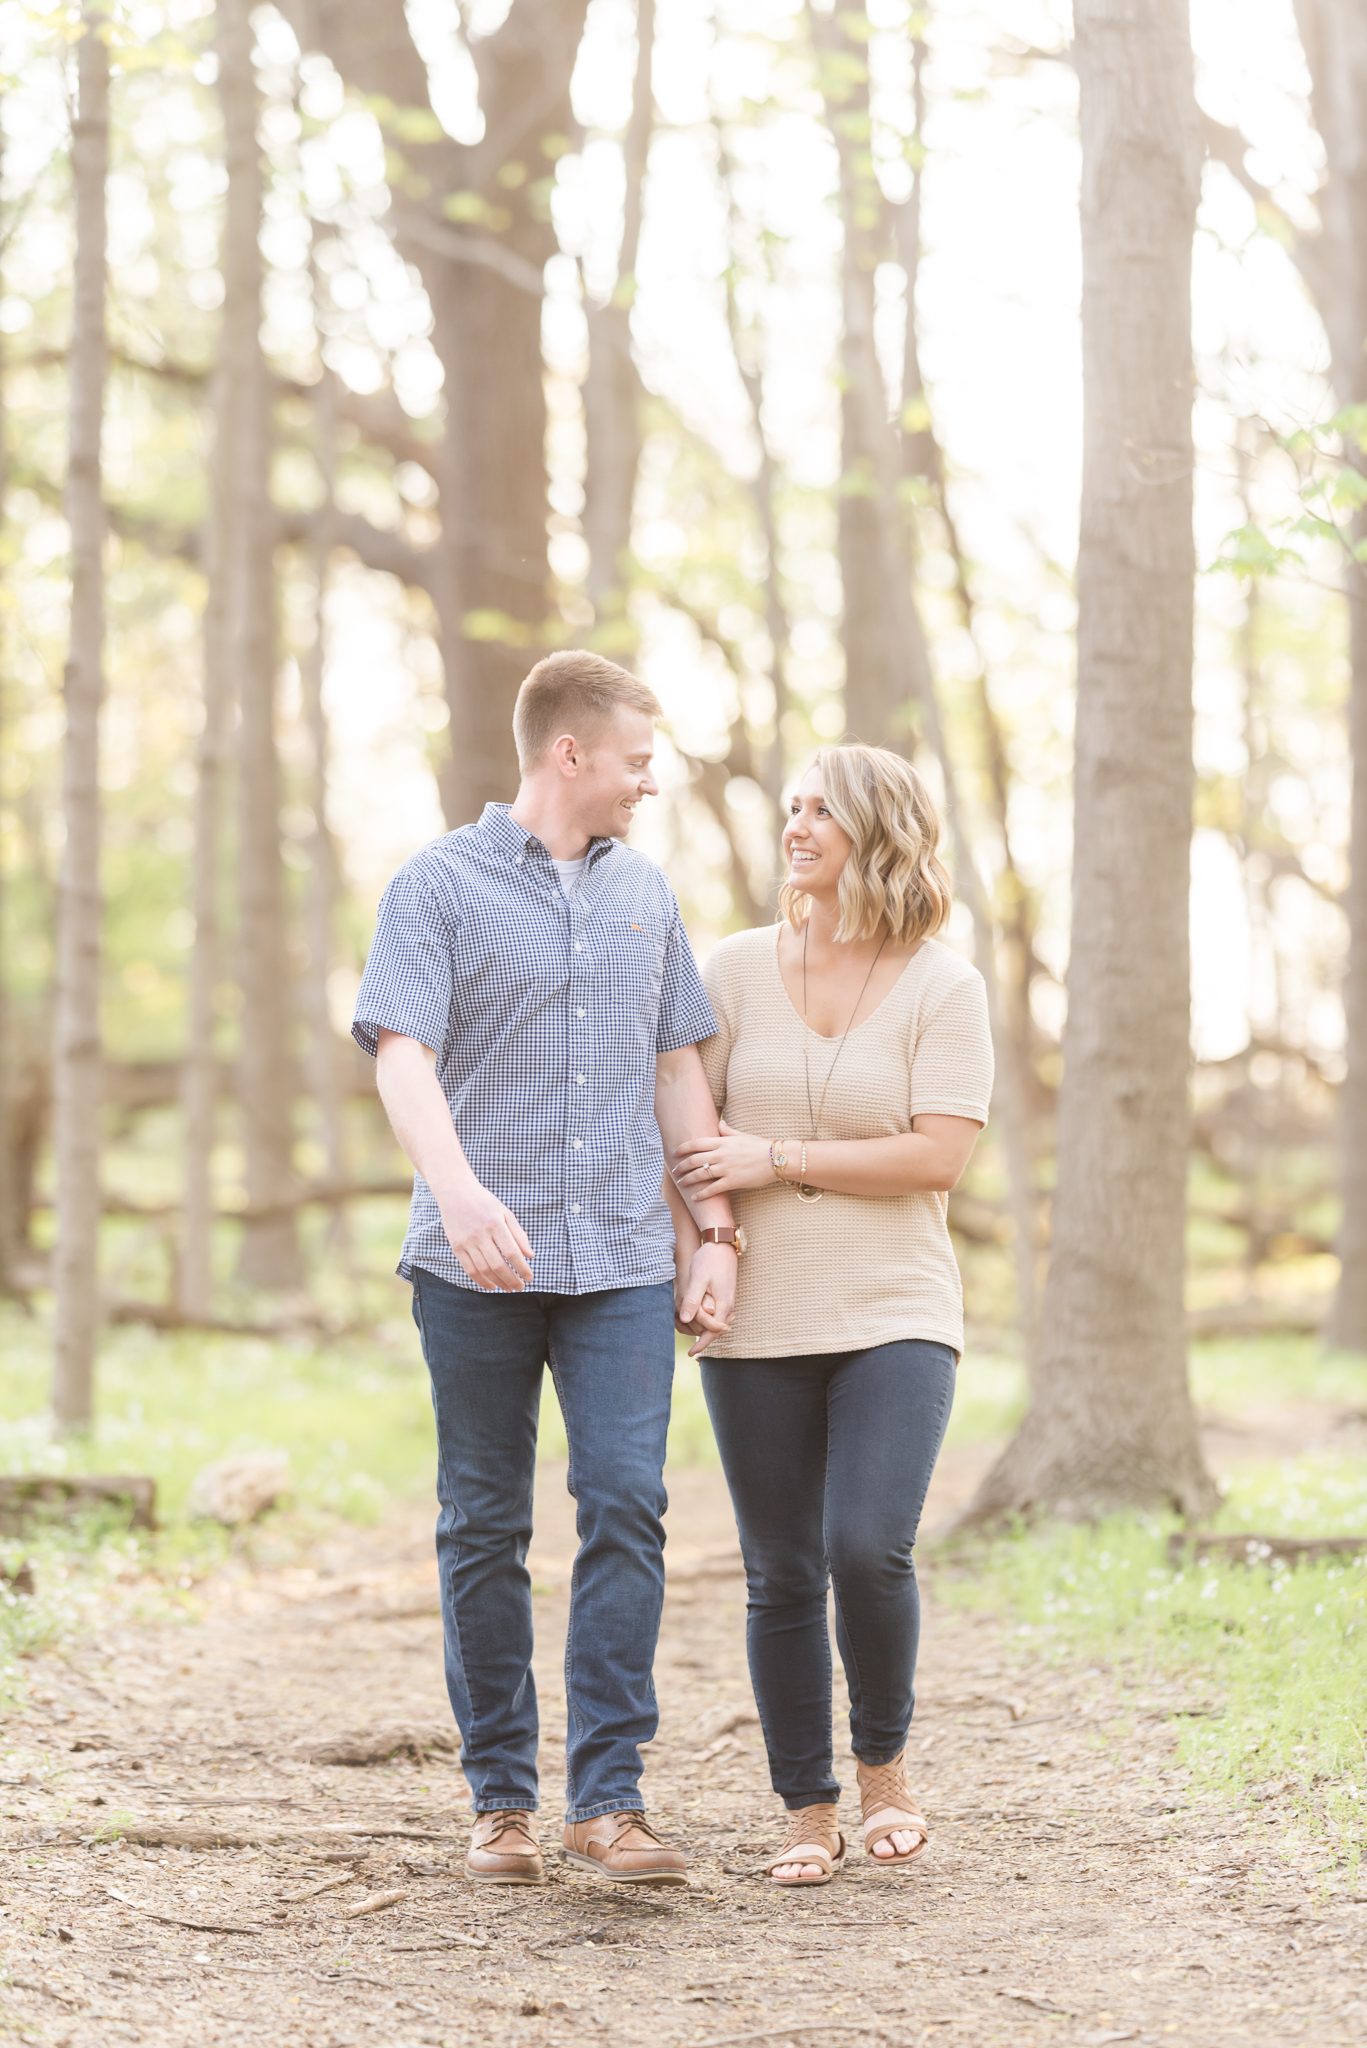 Richie Woods Nature Preserve and Mustard Seed Gardens Engagement Session Wedding Photos-31.jpg